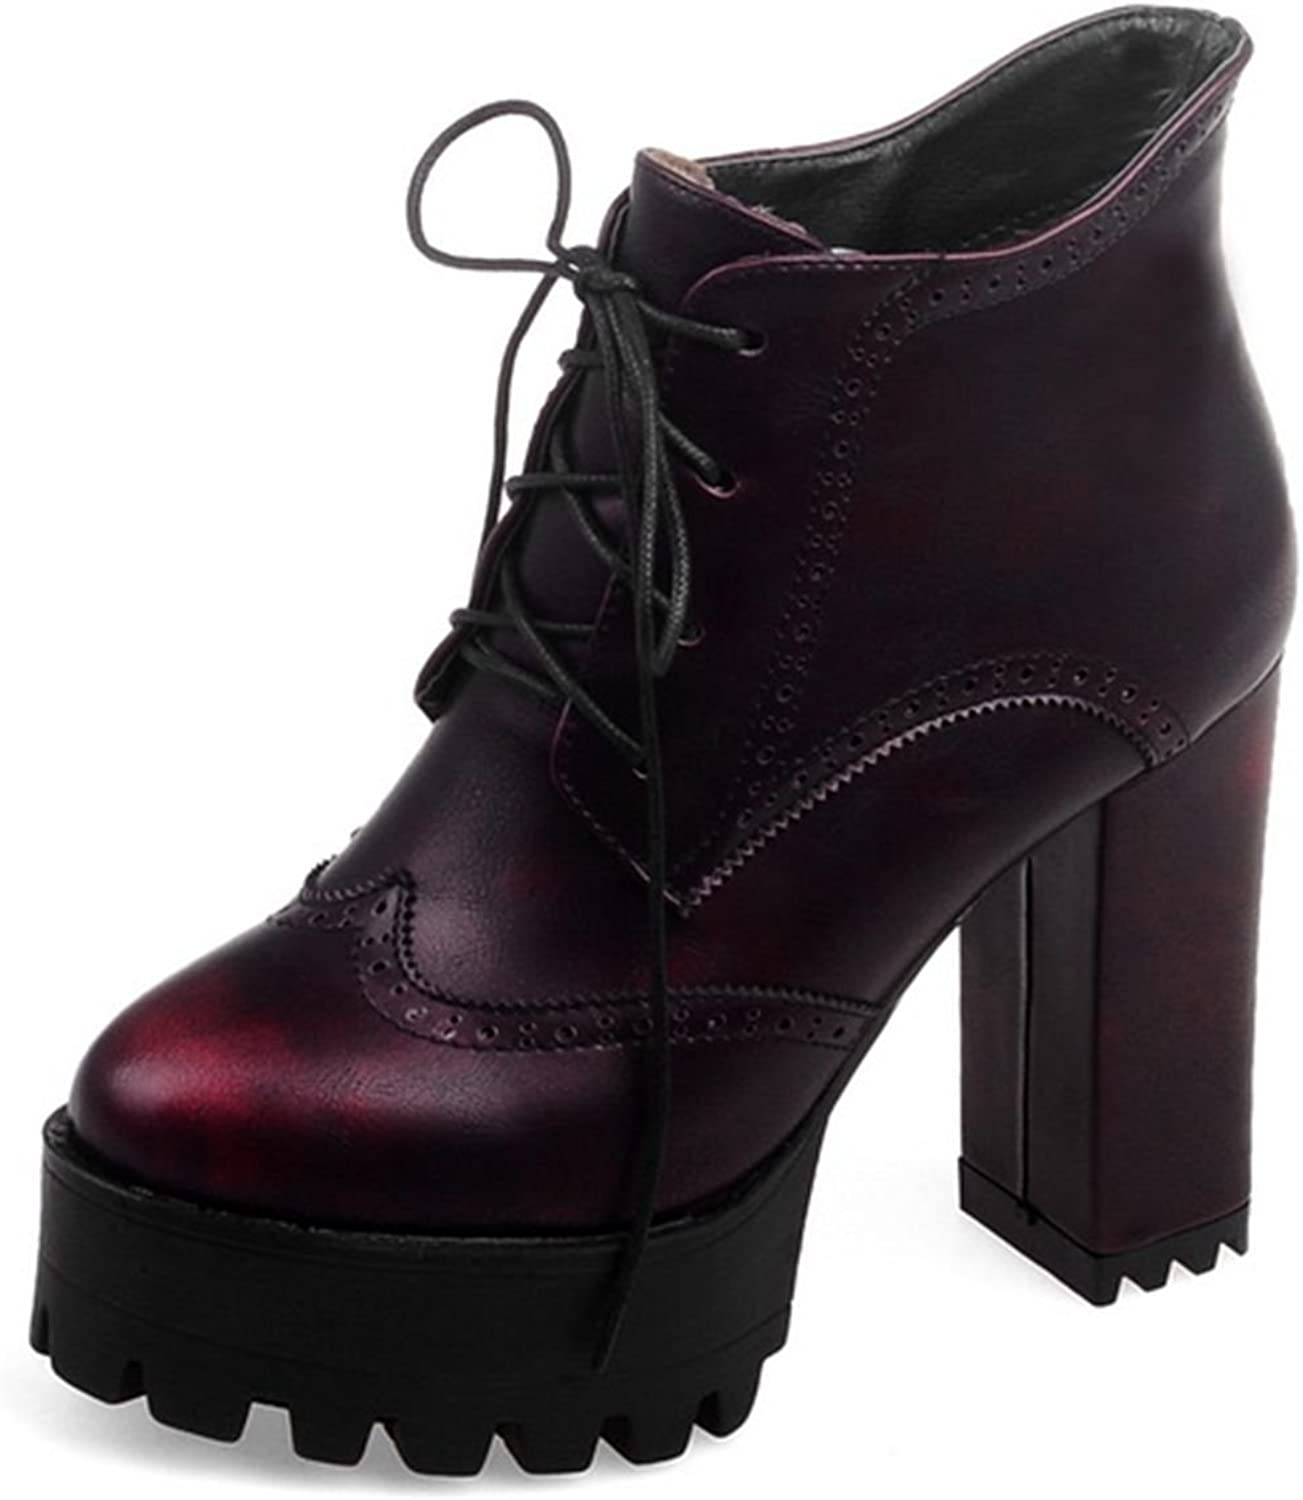 DoraTasia Lace up Platform Women's Ankle Boots